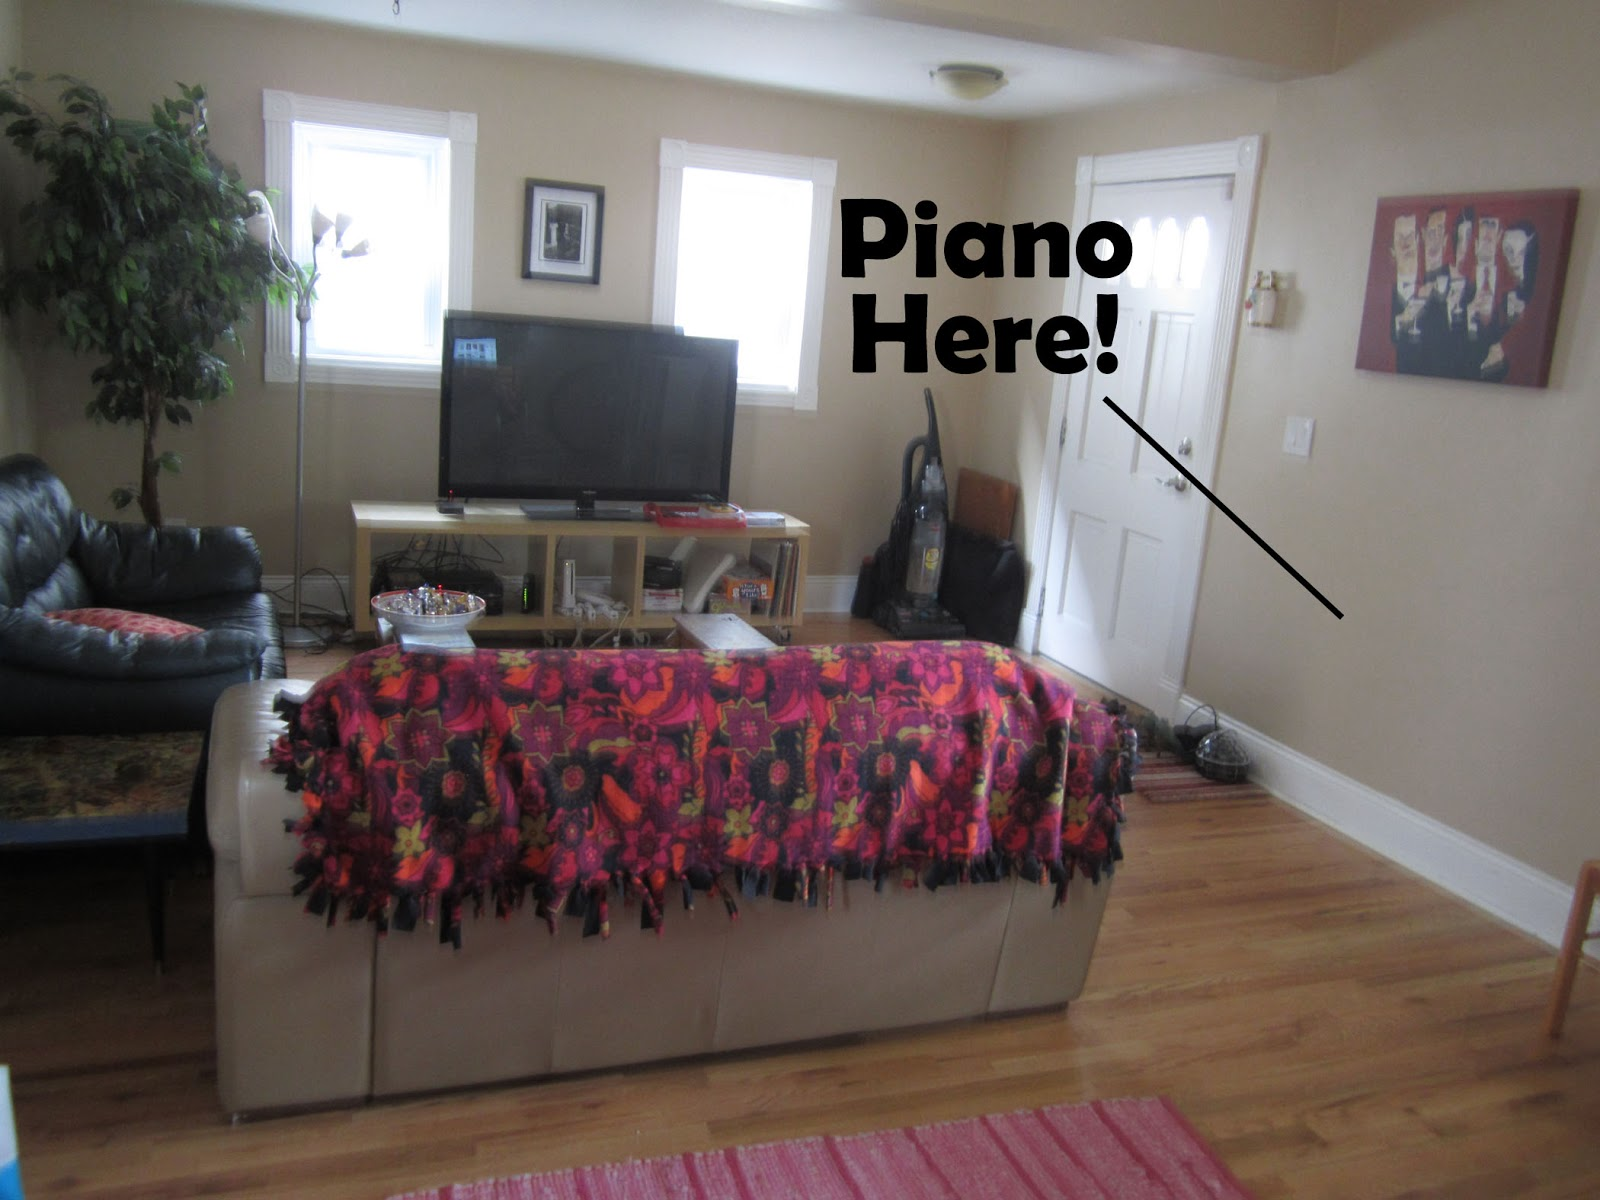 Beth 39 S Super Awesome Blog New Living Room Arrangement With Room For PI